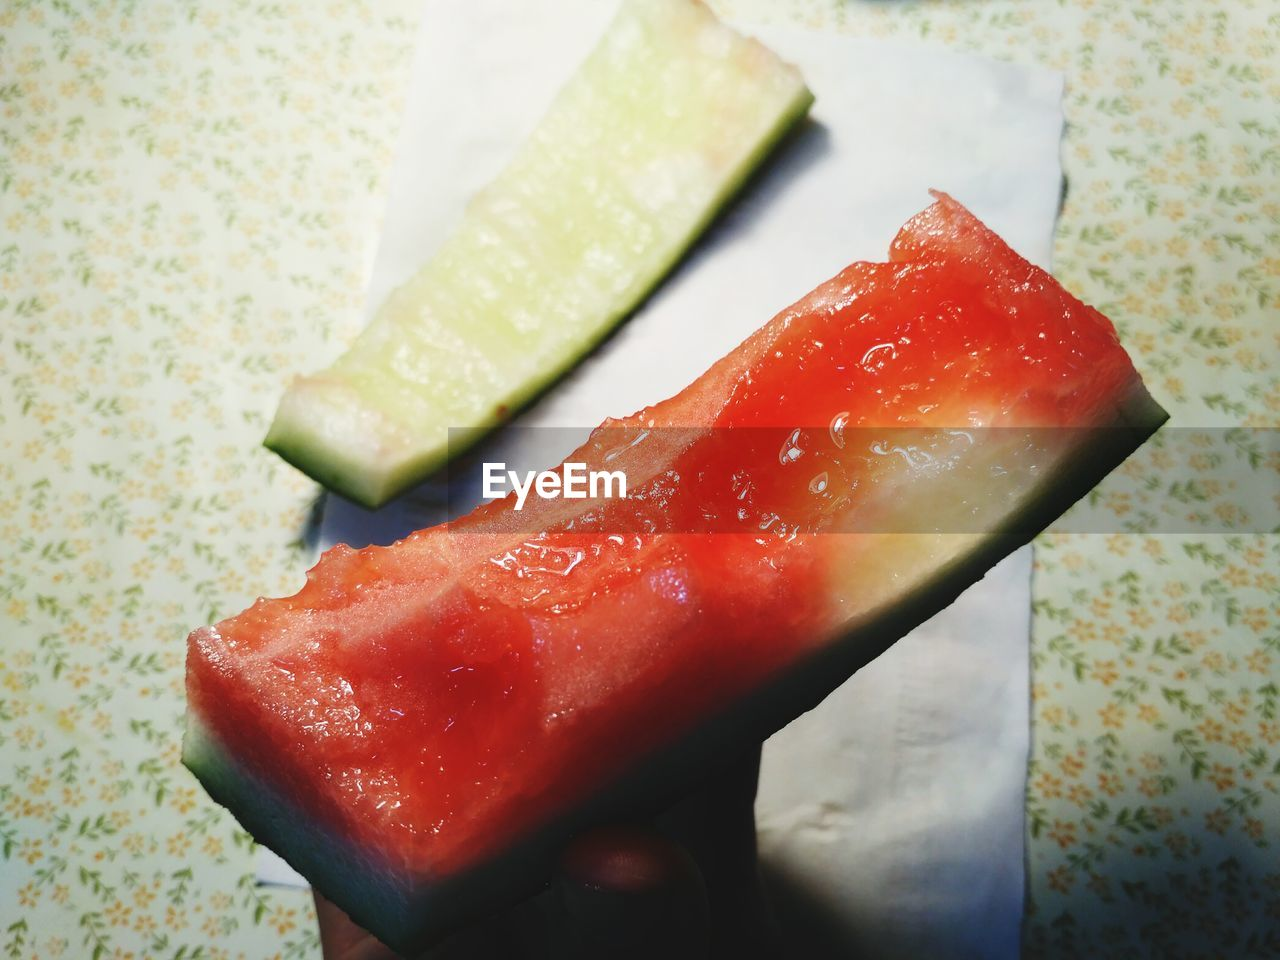 food and drink, food, freshness, healthy eating, close-up, slice, indoors, ready-to-eat, no people, red, day